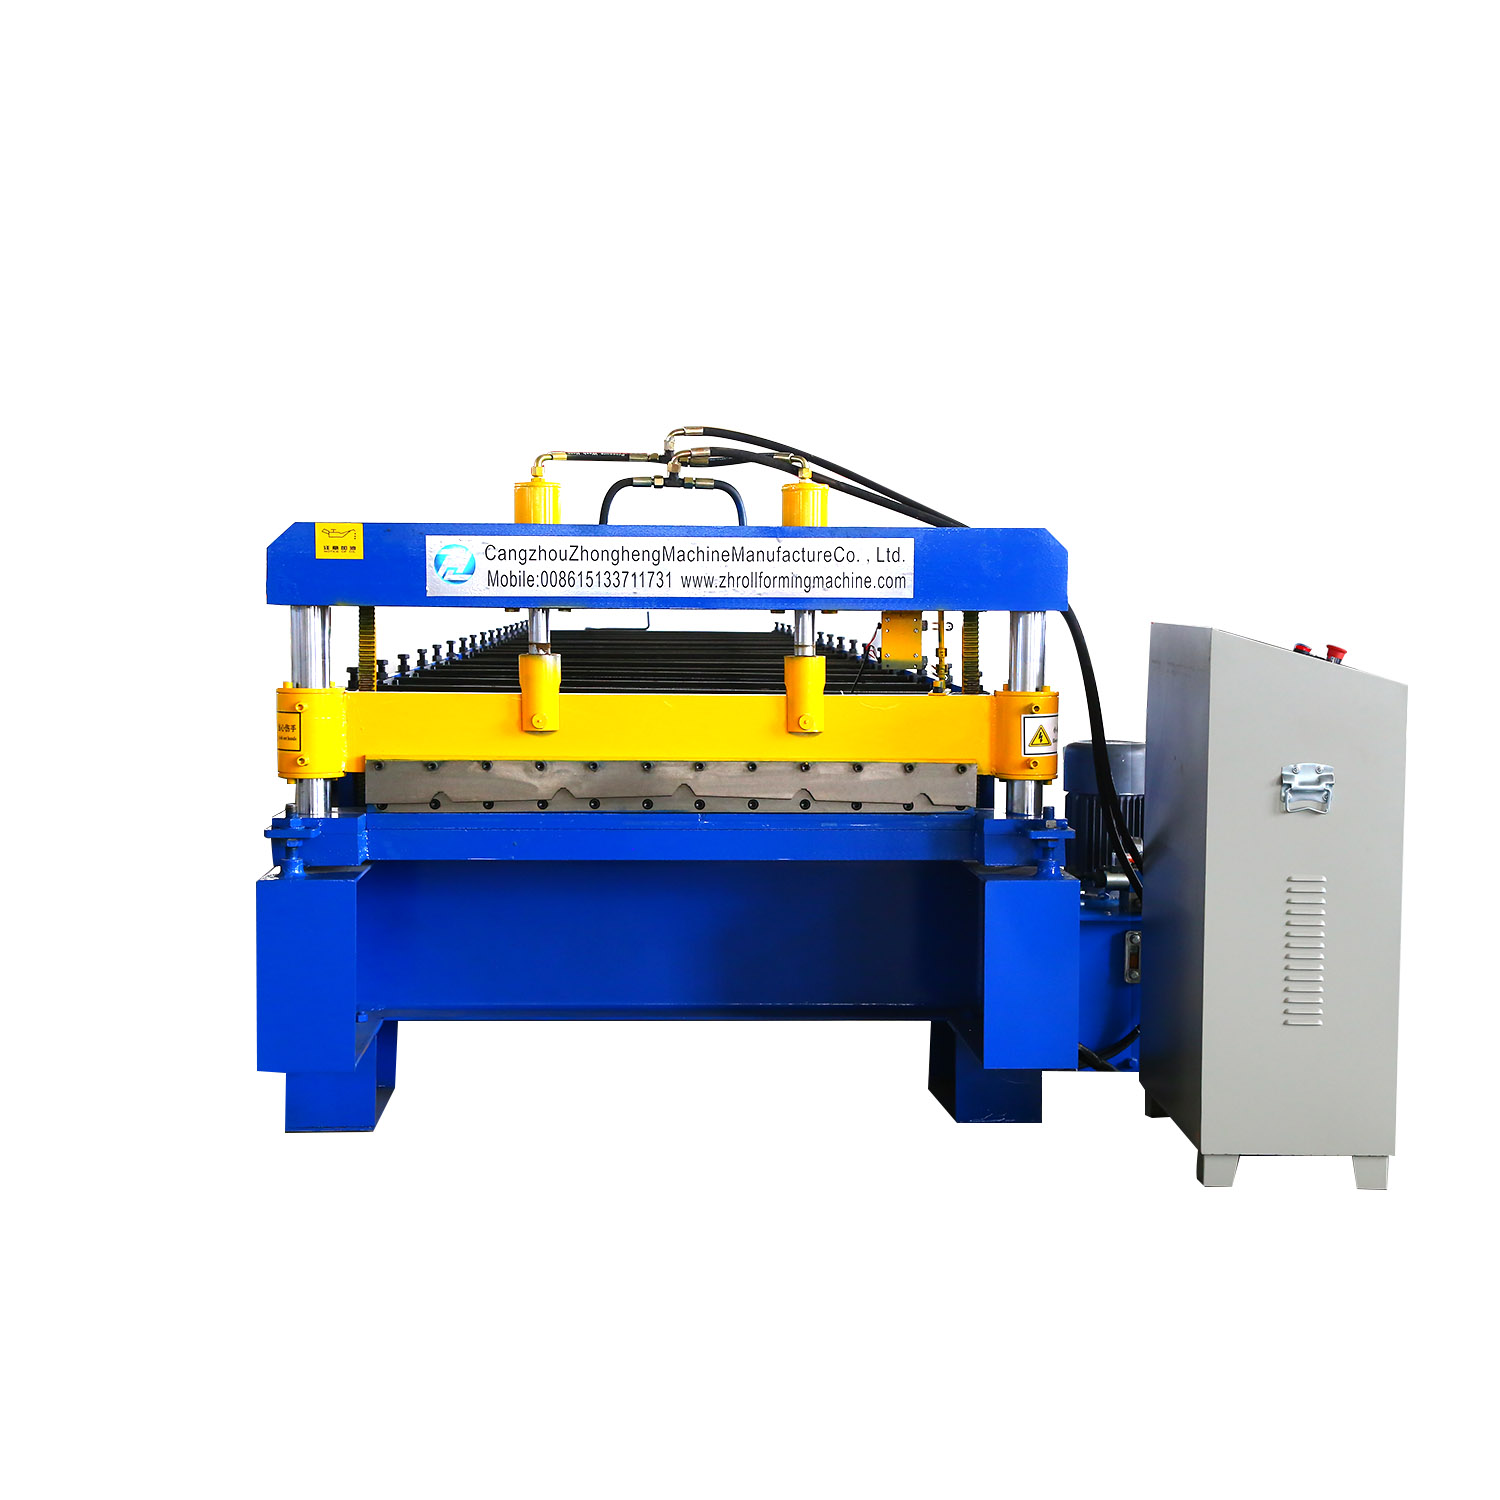 New IBR Trapezoid 4 metal roofing tiles making machine roofing sheet making machinery/roll forming machine manifaqcturfer